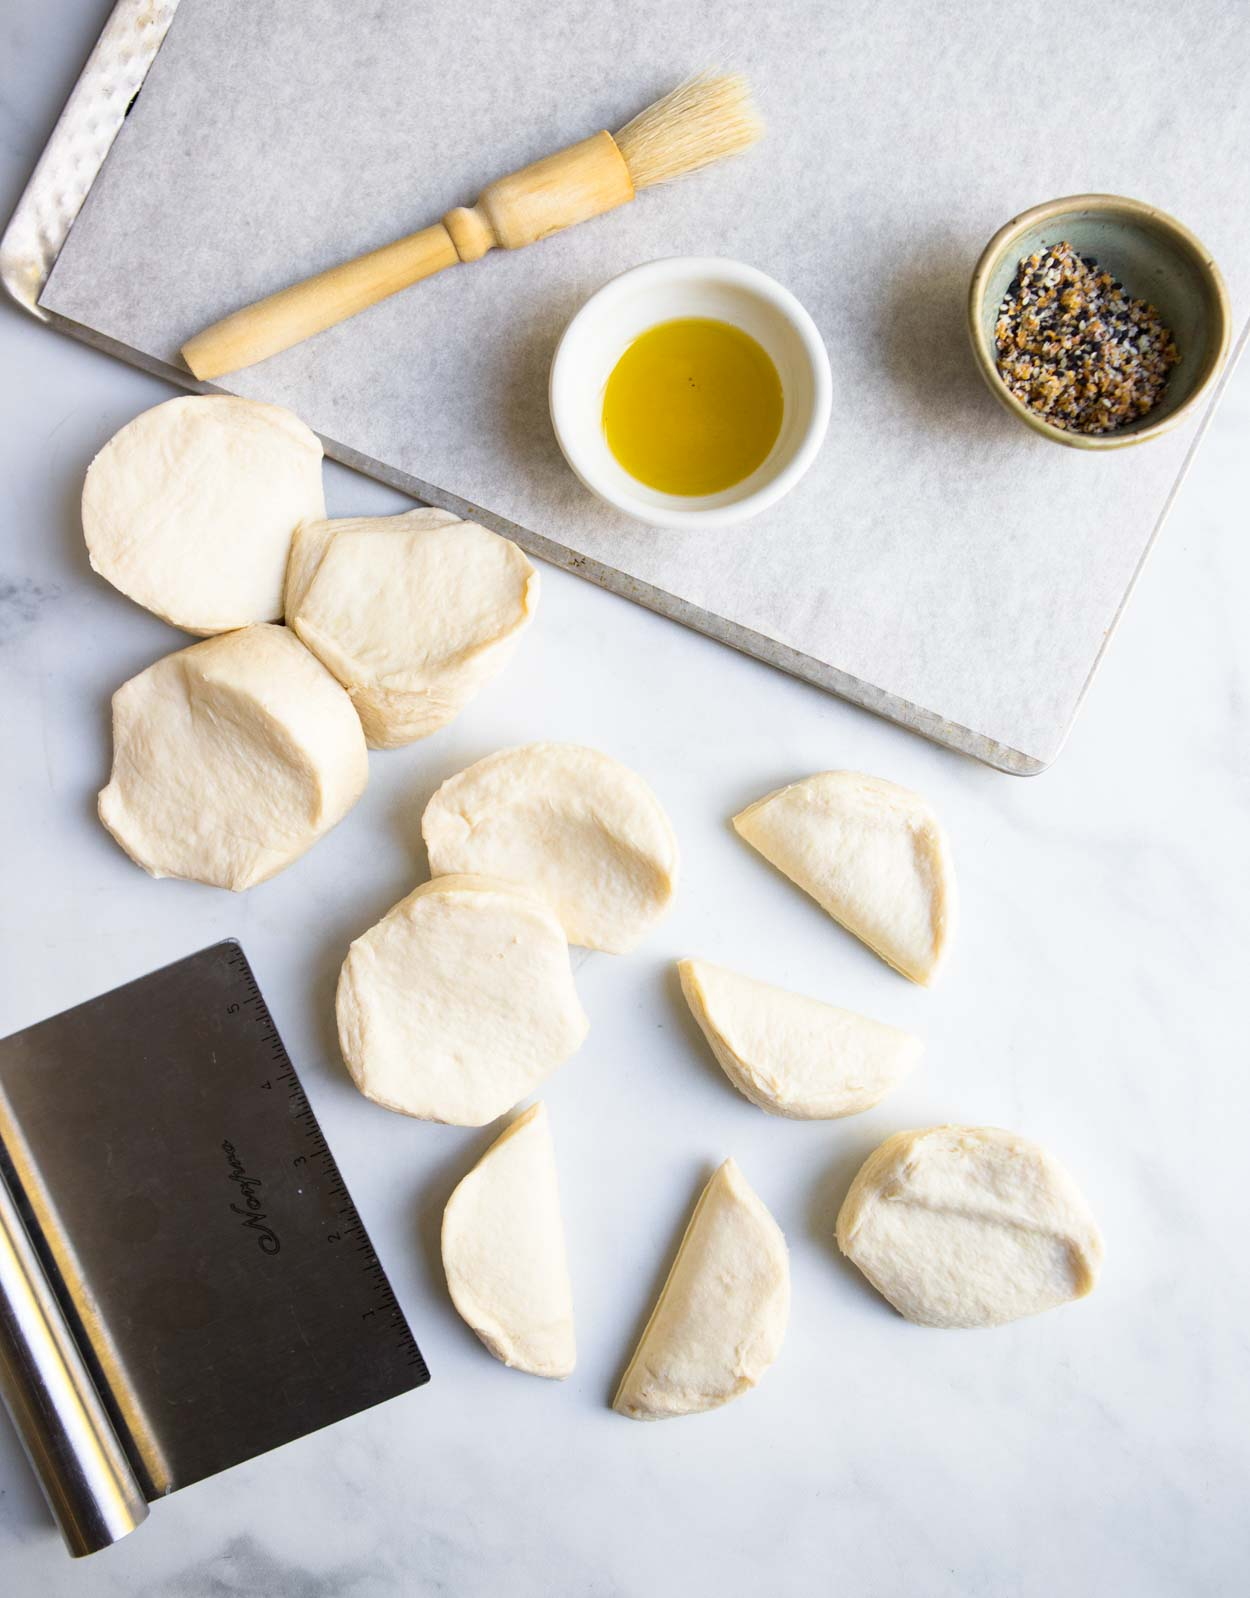 biscuit dough and olive oil and pastry cutter on marble surface